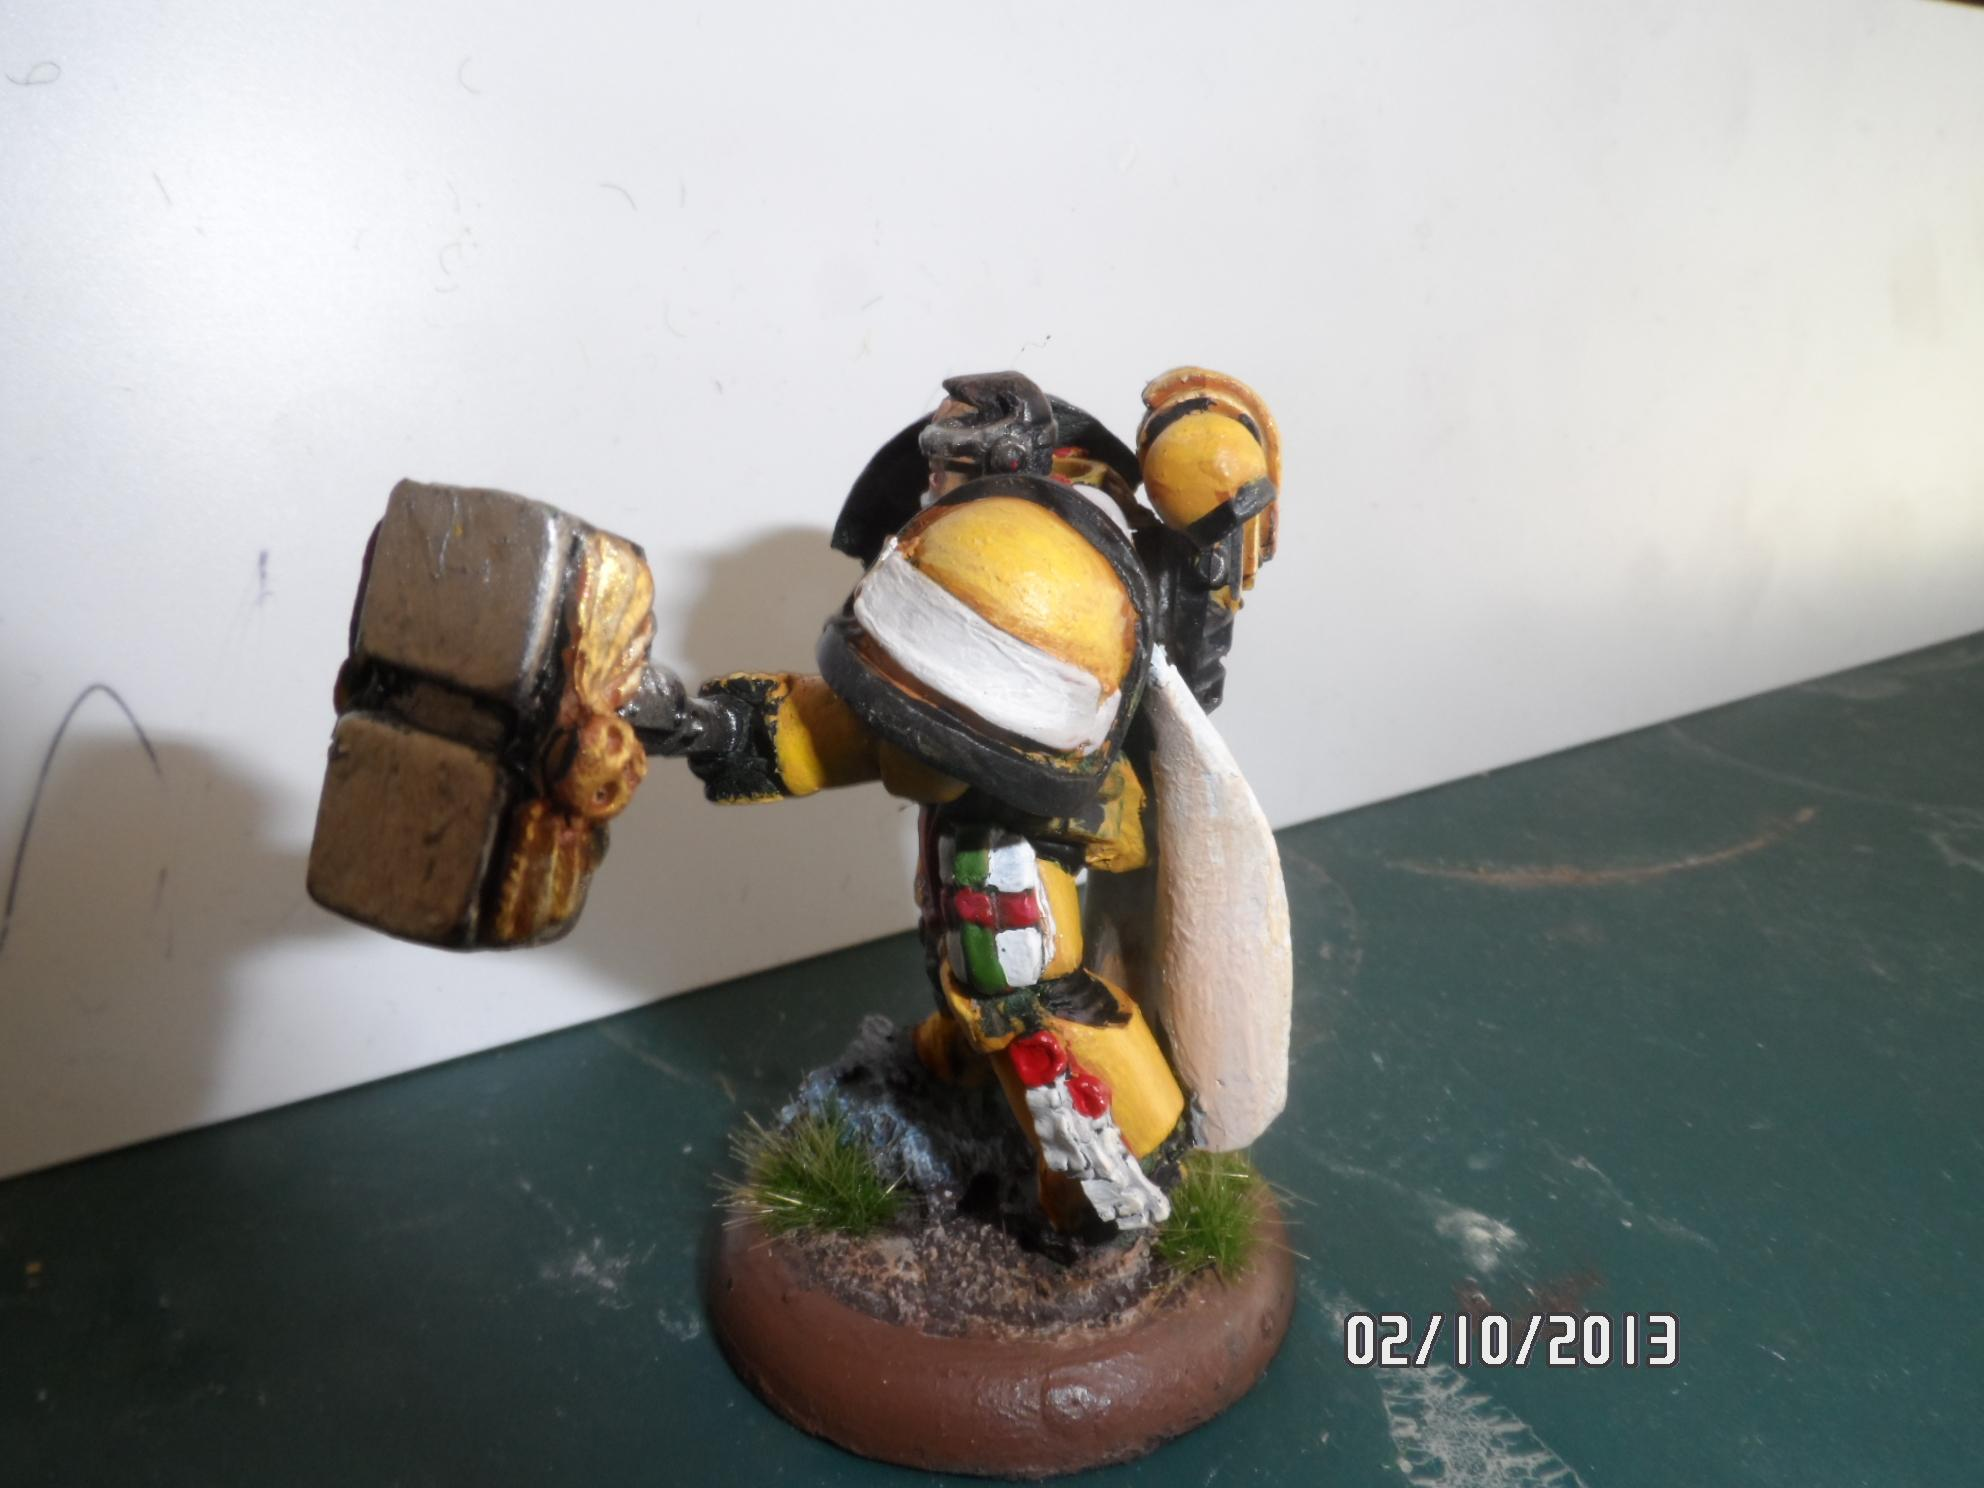 Complete Sculpt, Imperial Fists, Spacemarine, True-scale, Warhammer 40,000